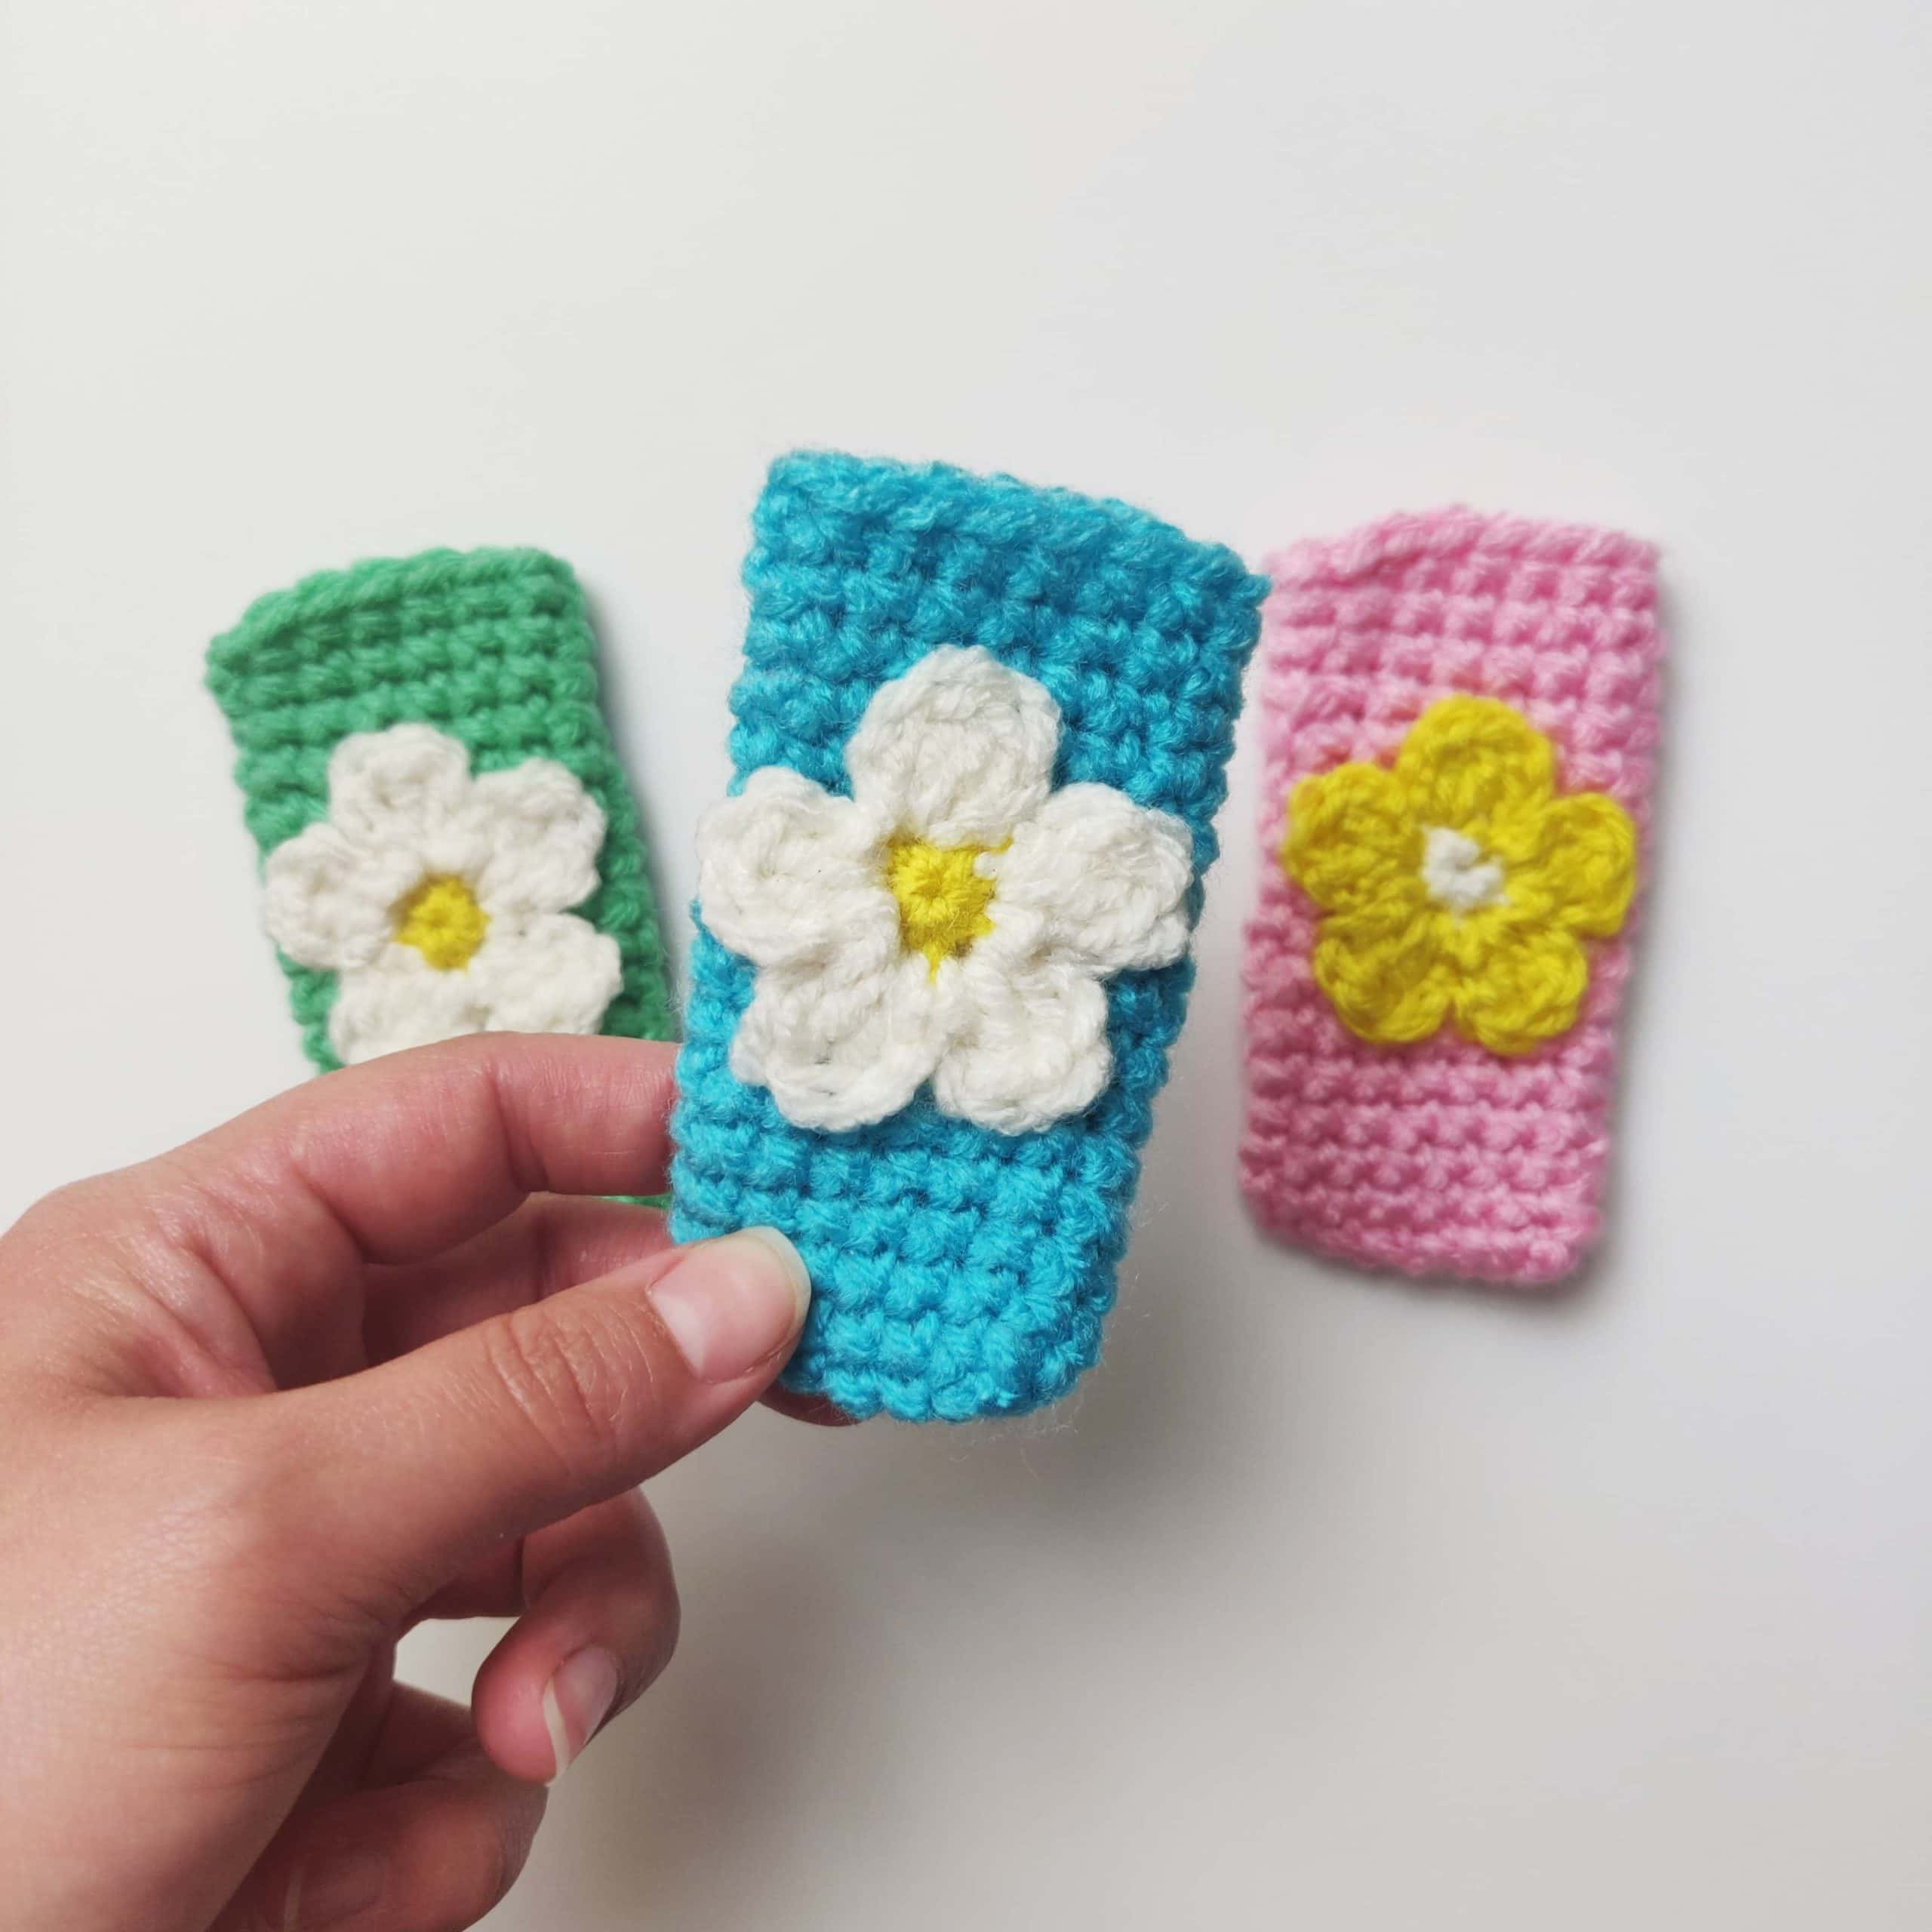 crochet popsicle holders with flowers.